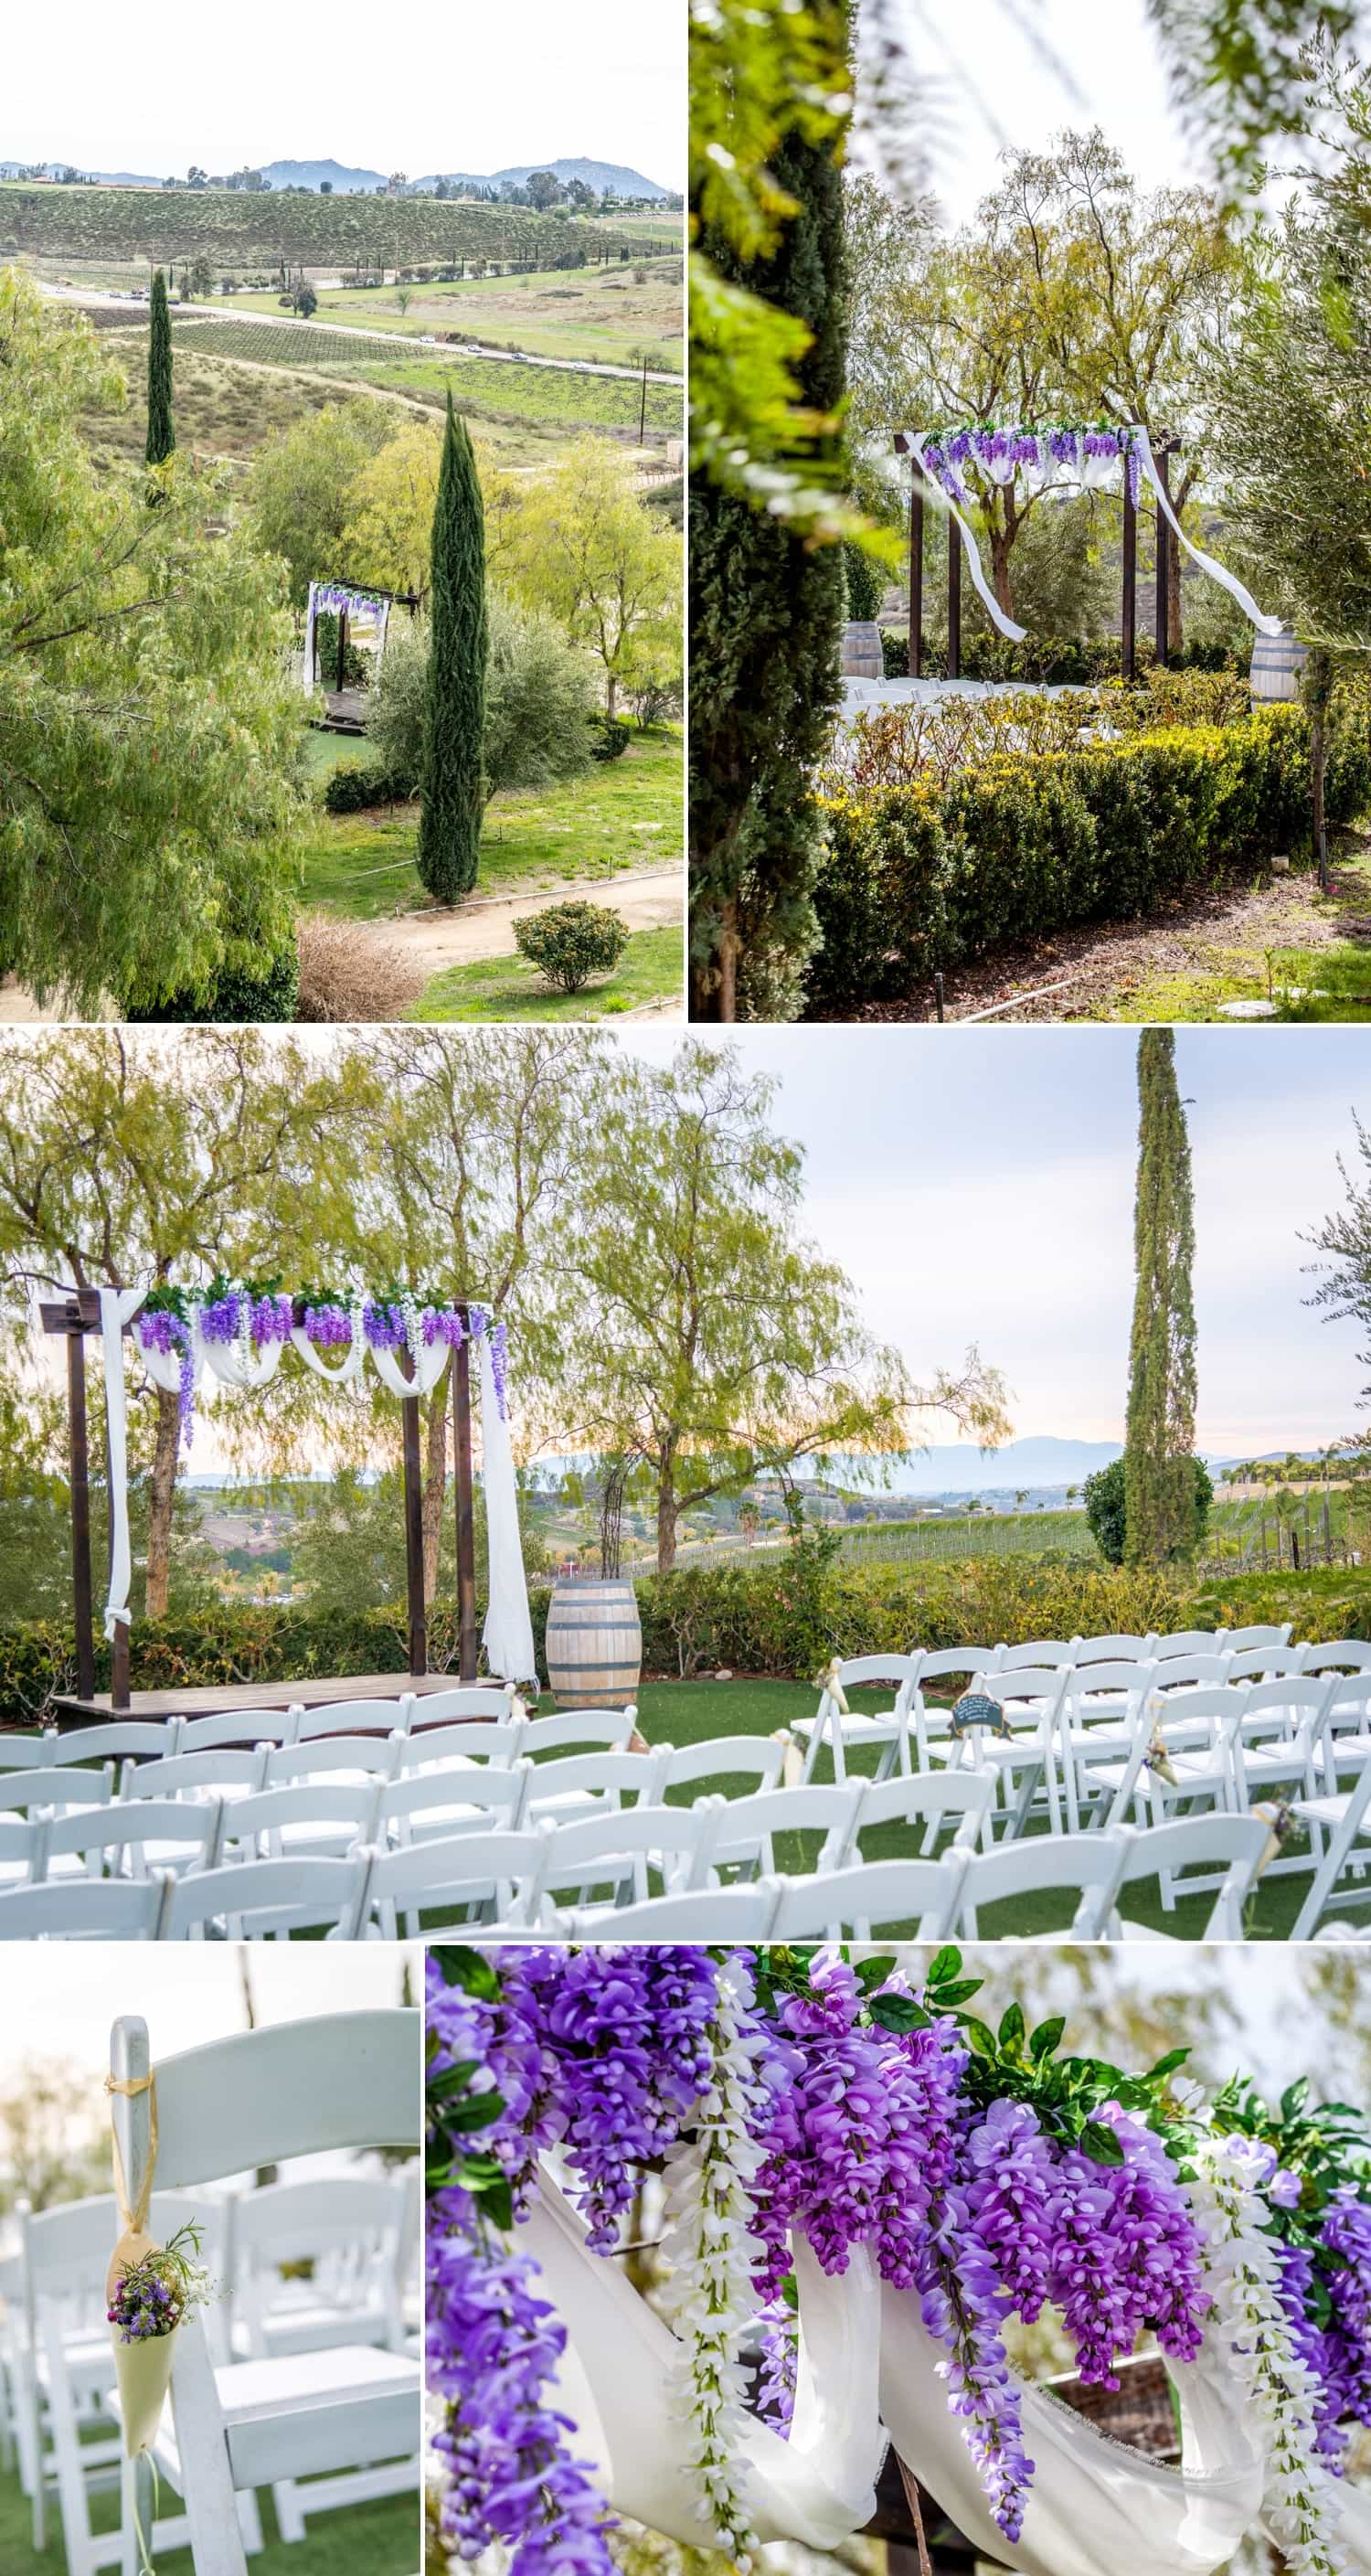 Photography of the ceremony site at Falkner Winery.